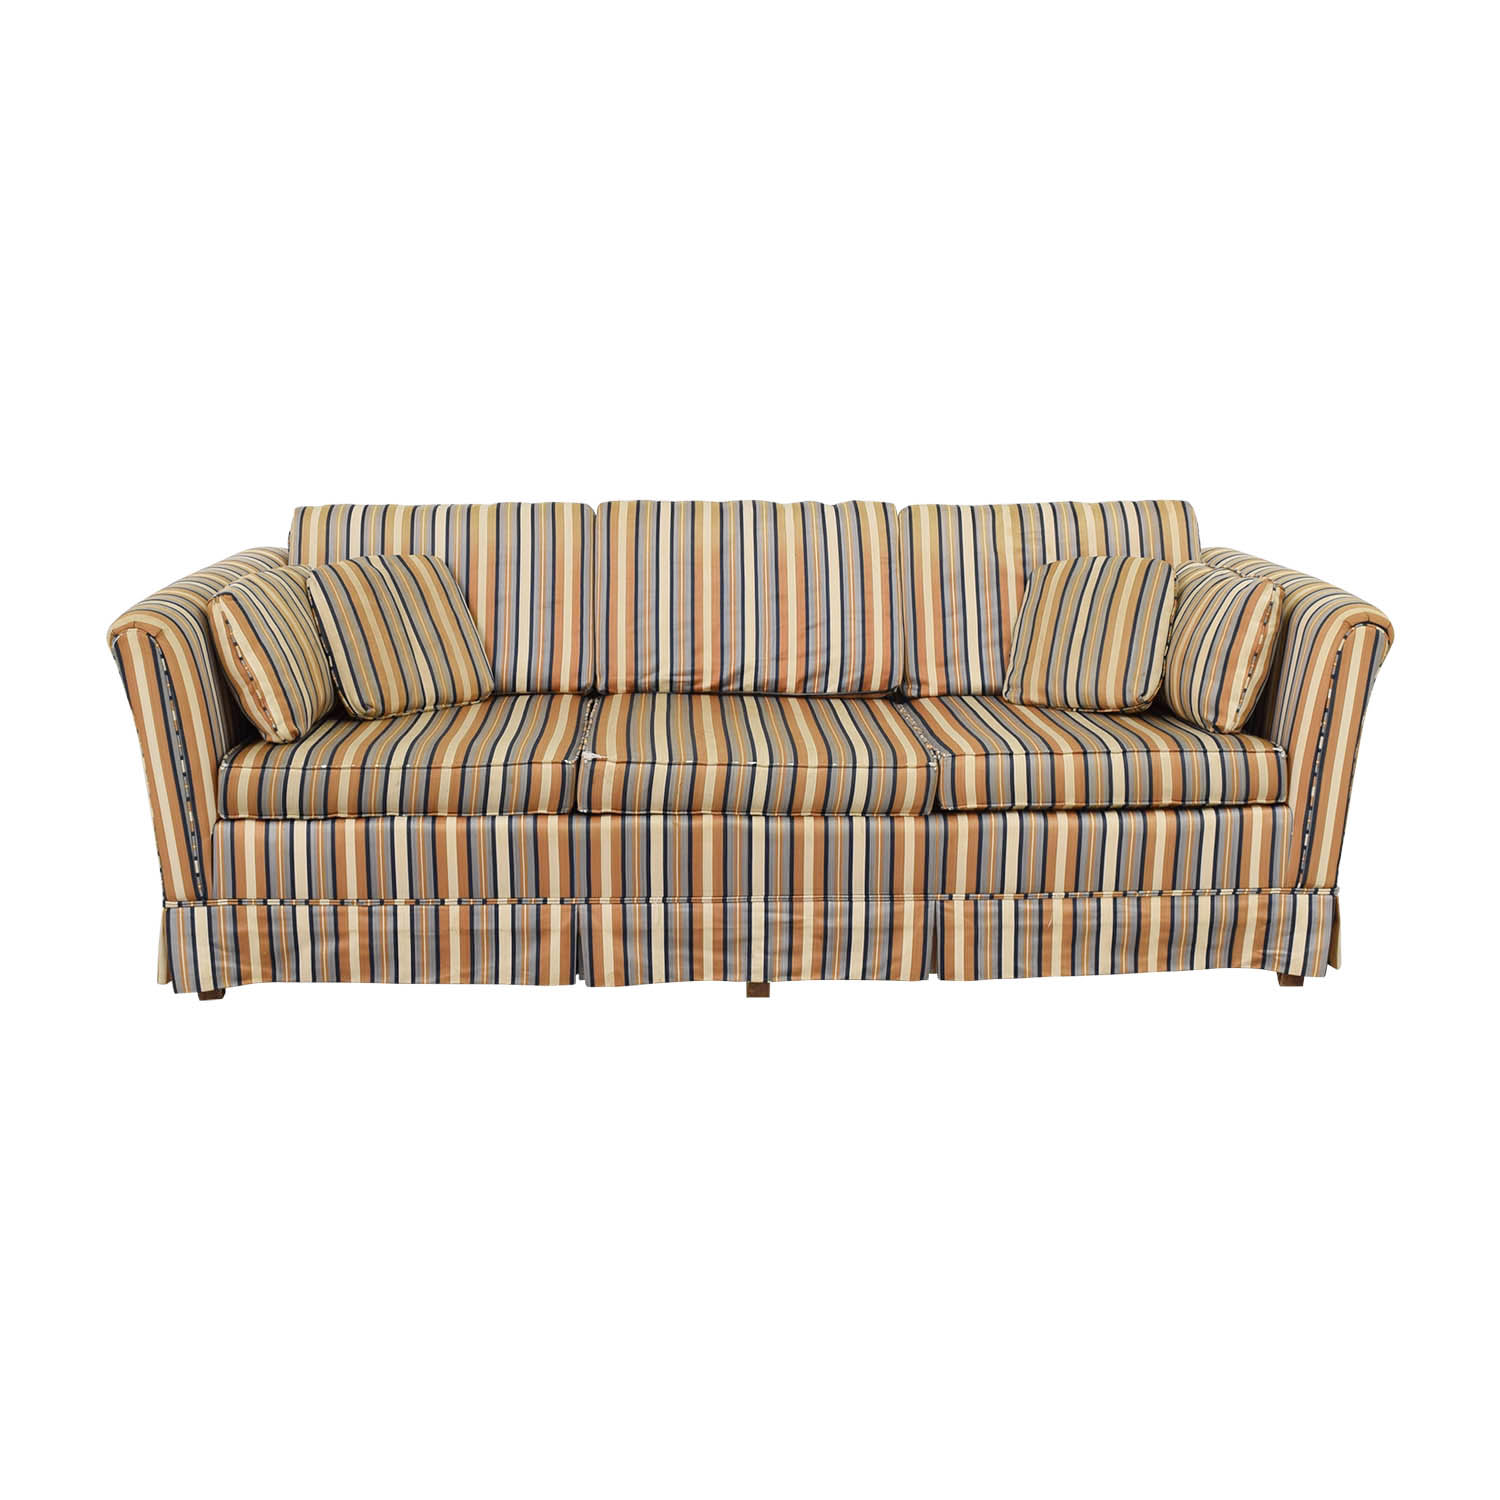 Striped Three-Seater Sofa